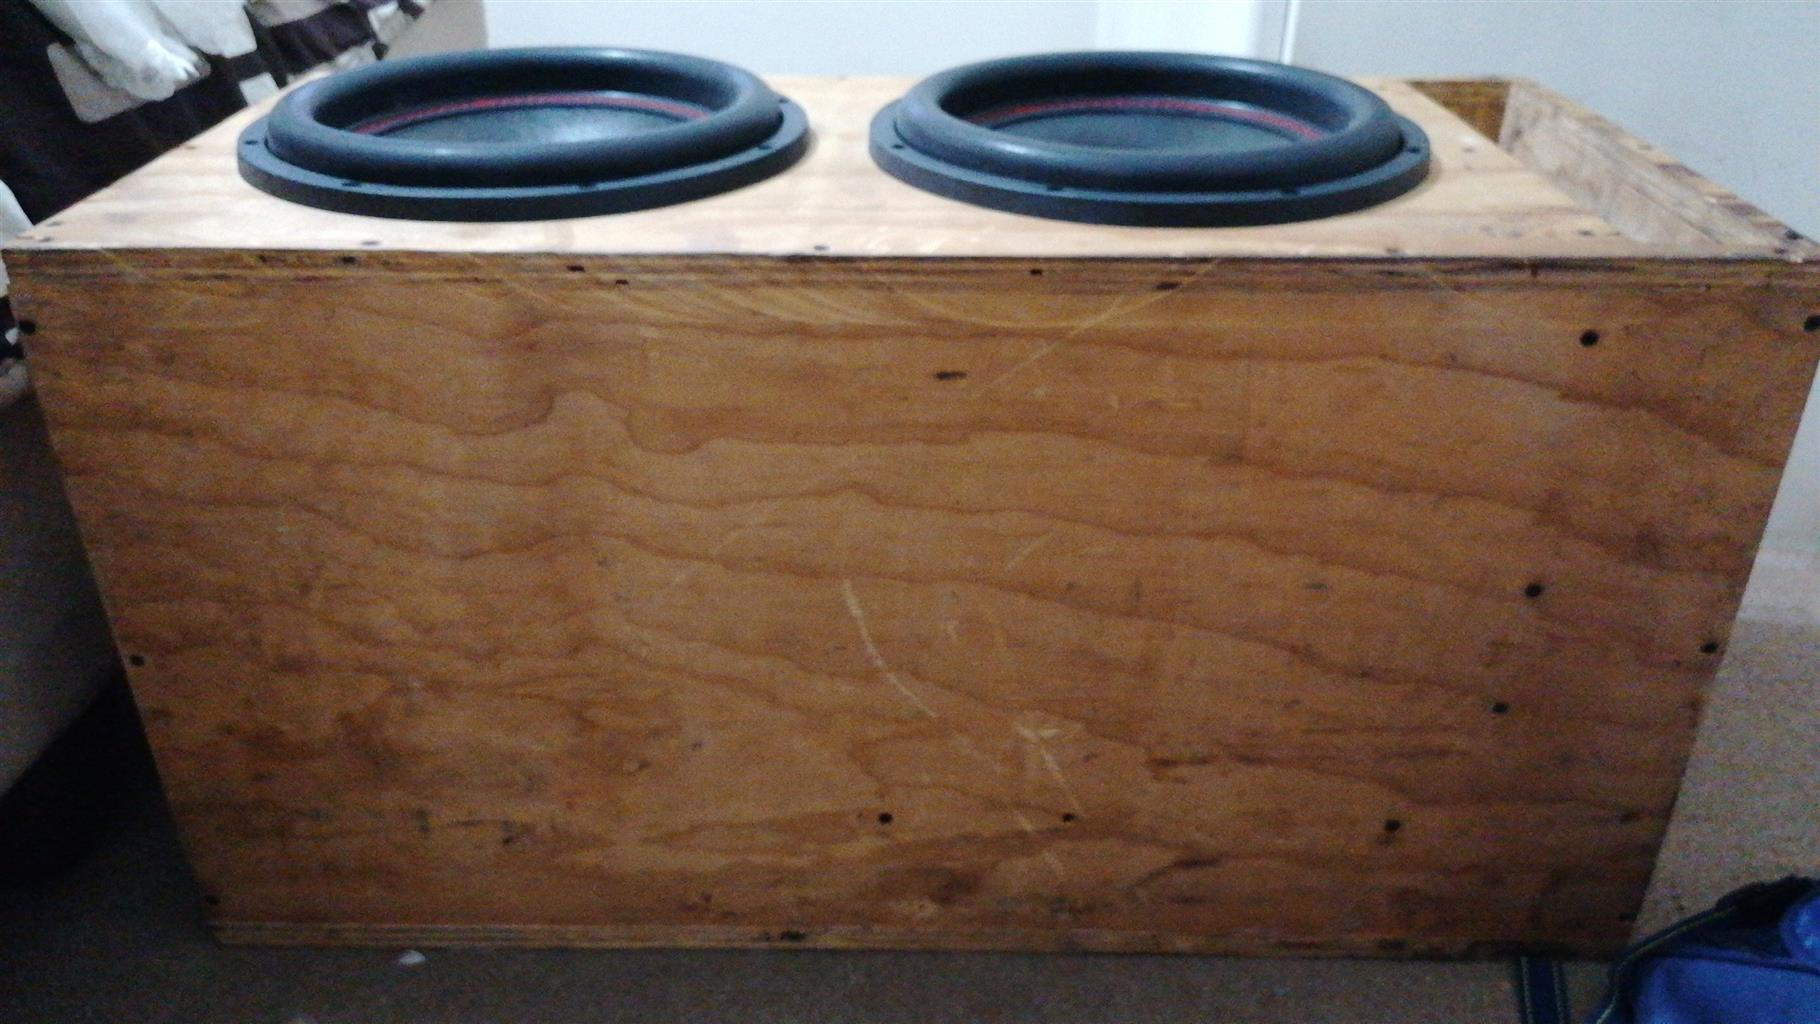 2 amplifier and subwoofers